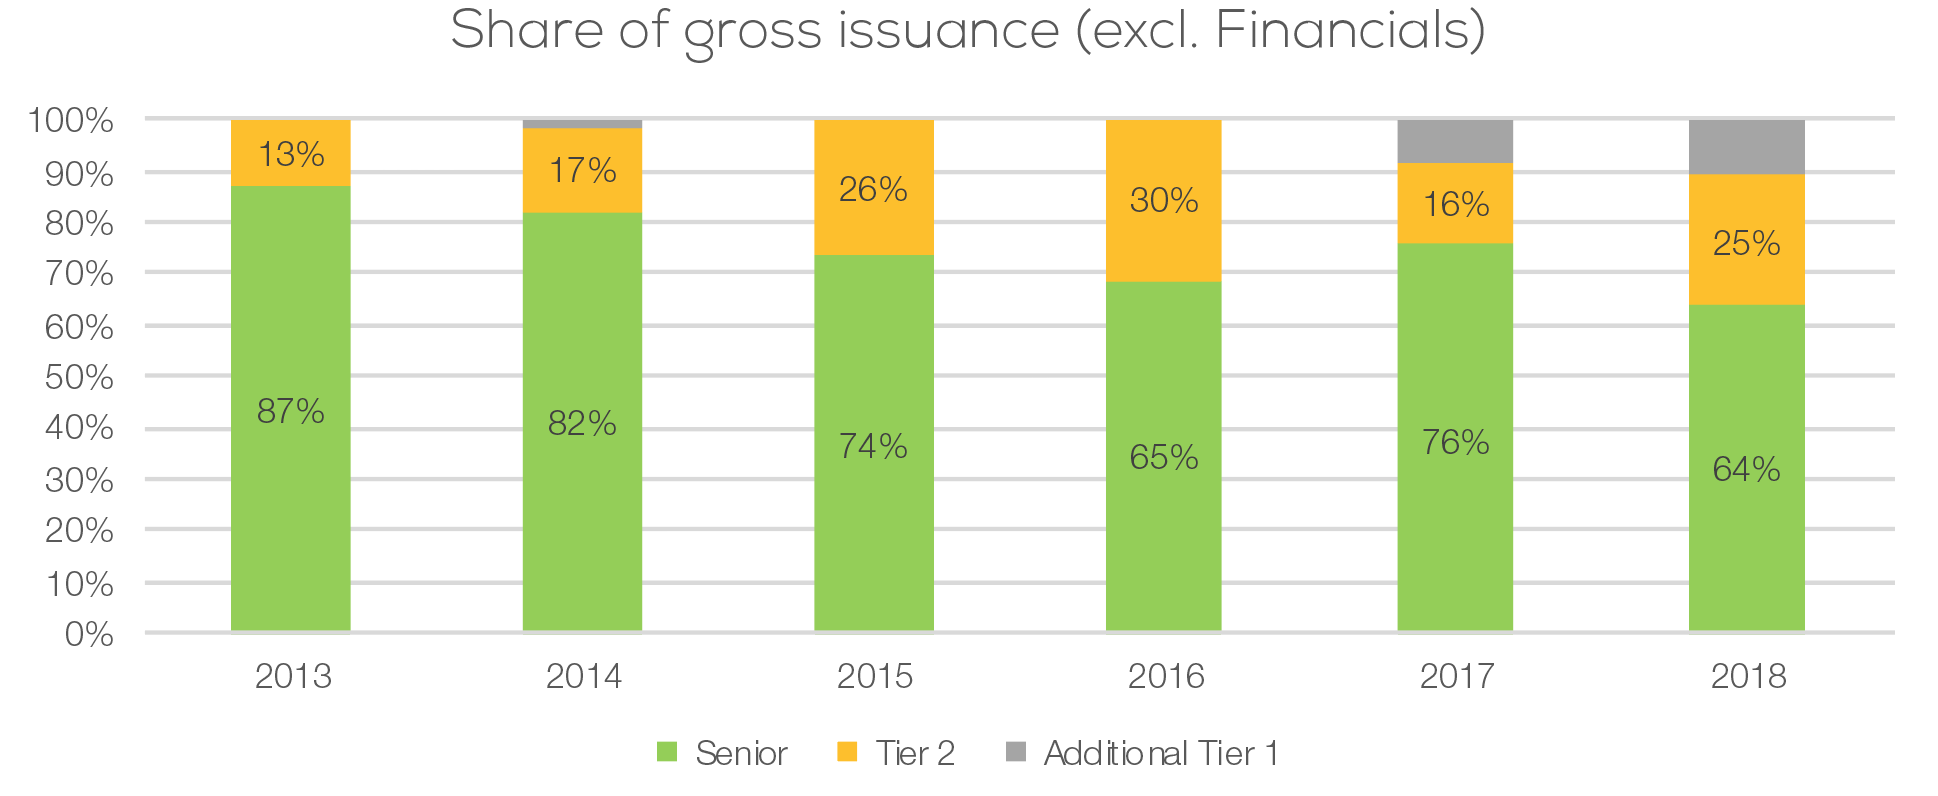 Share of gross issuance